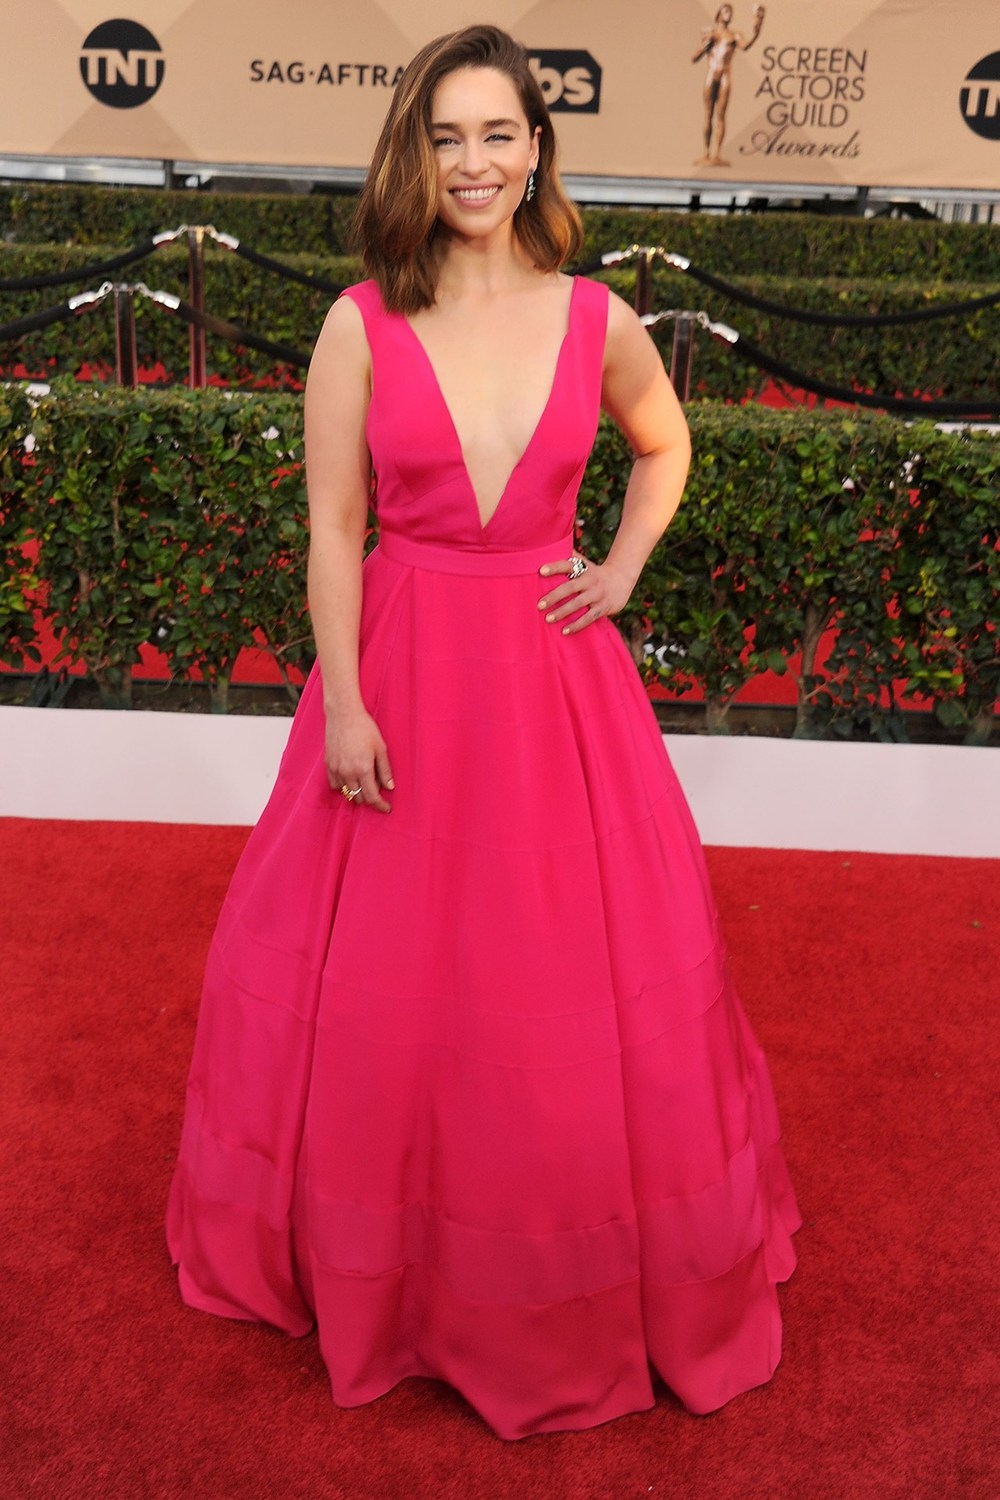 Emilia Clarke opted for a bright pink Dior gown.